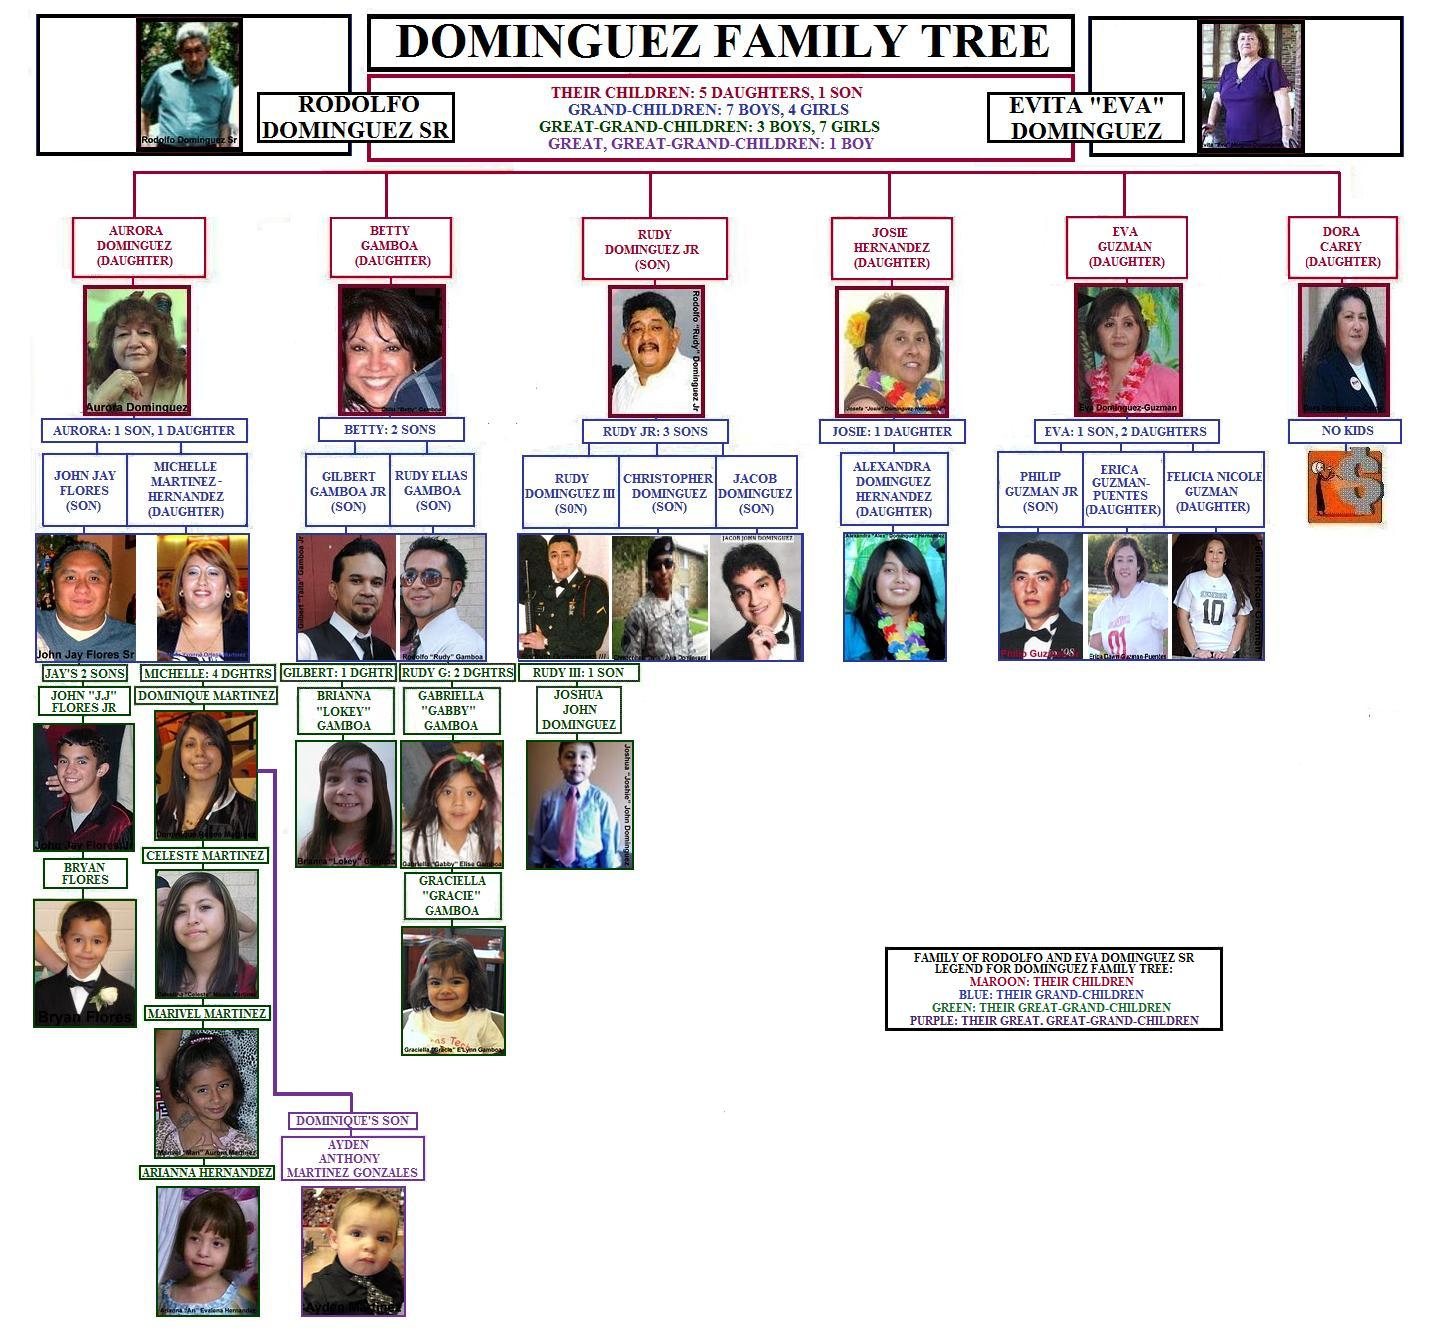 DOMINGUEZ FAMILY BLOG DOMINGUEZ FAMILY TREE With Pictures And In Colordefinitely Worth My